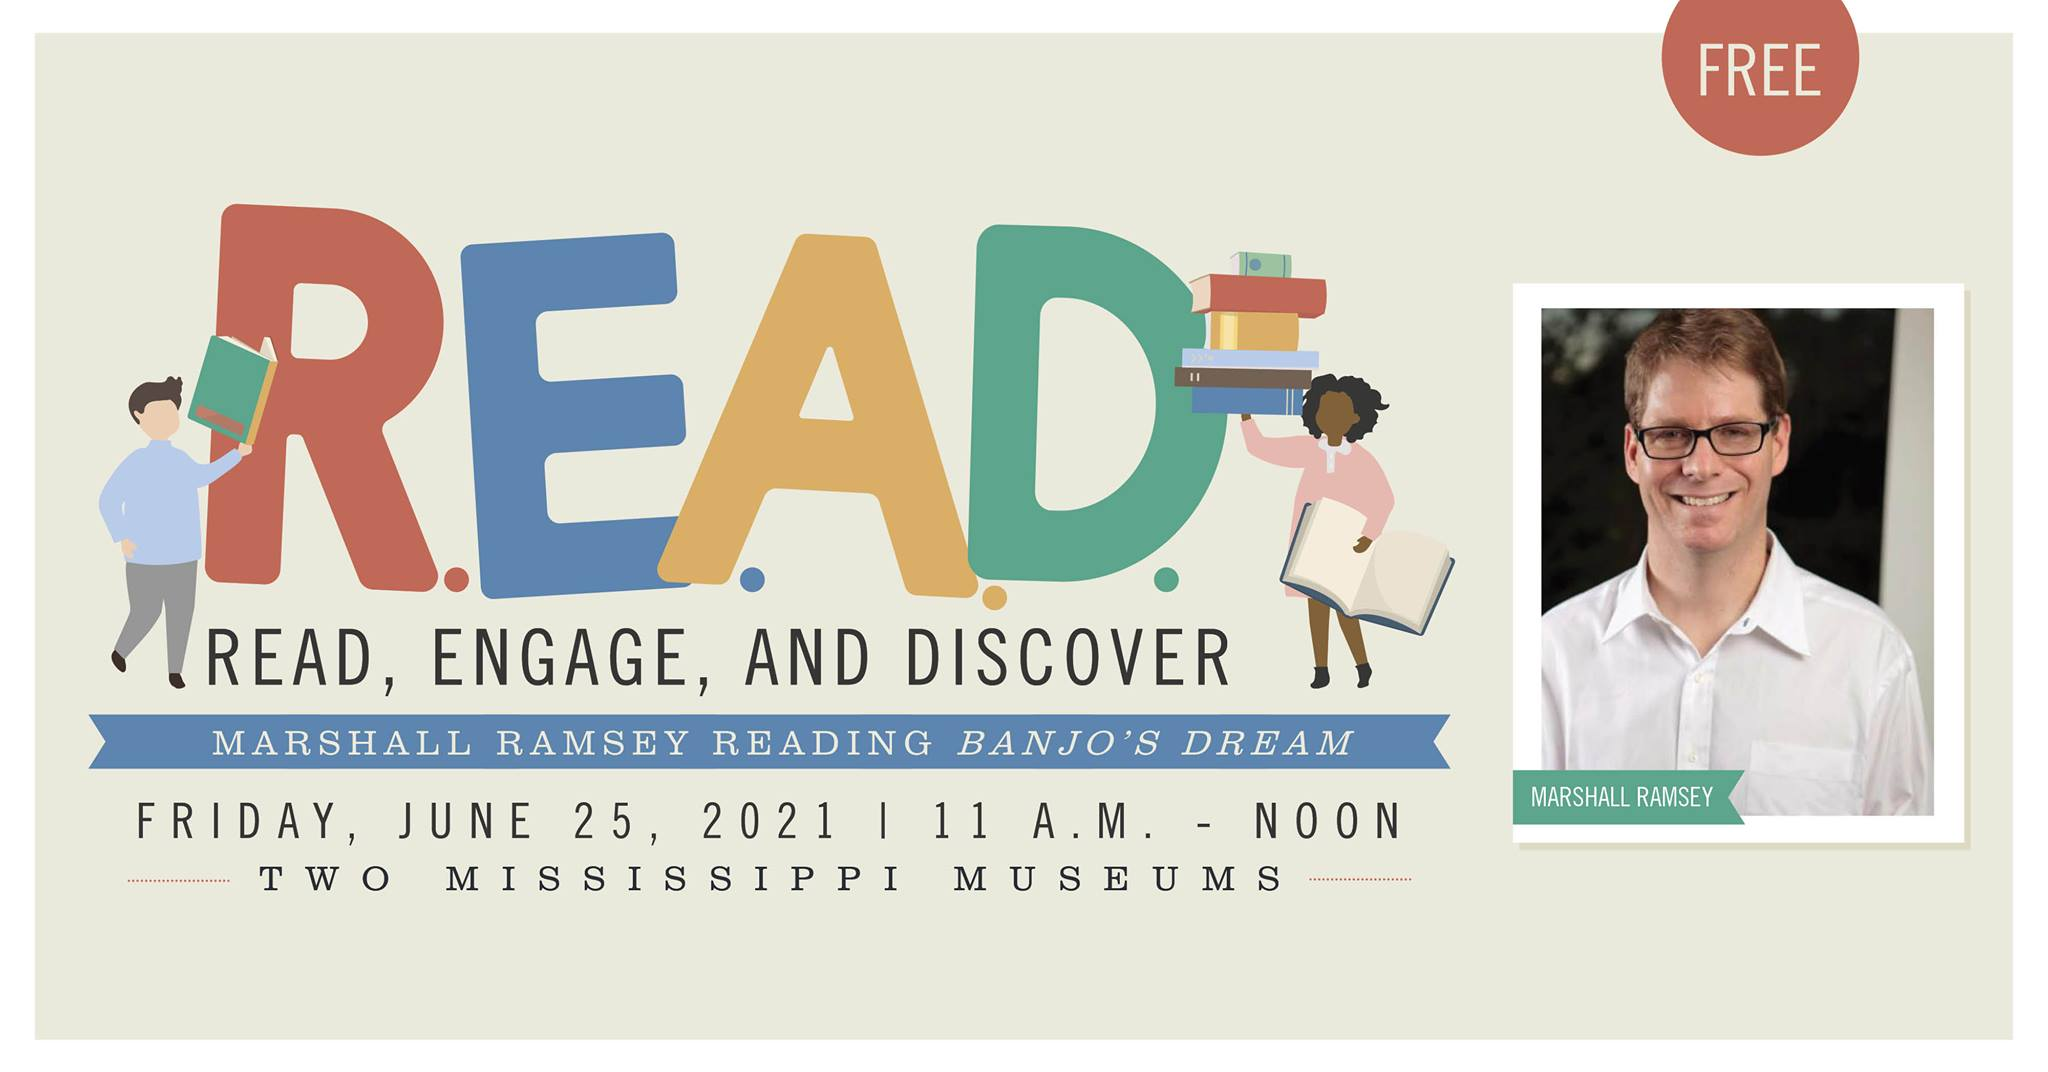 R.E.A.D. (Read, Engage, and Discover)